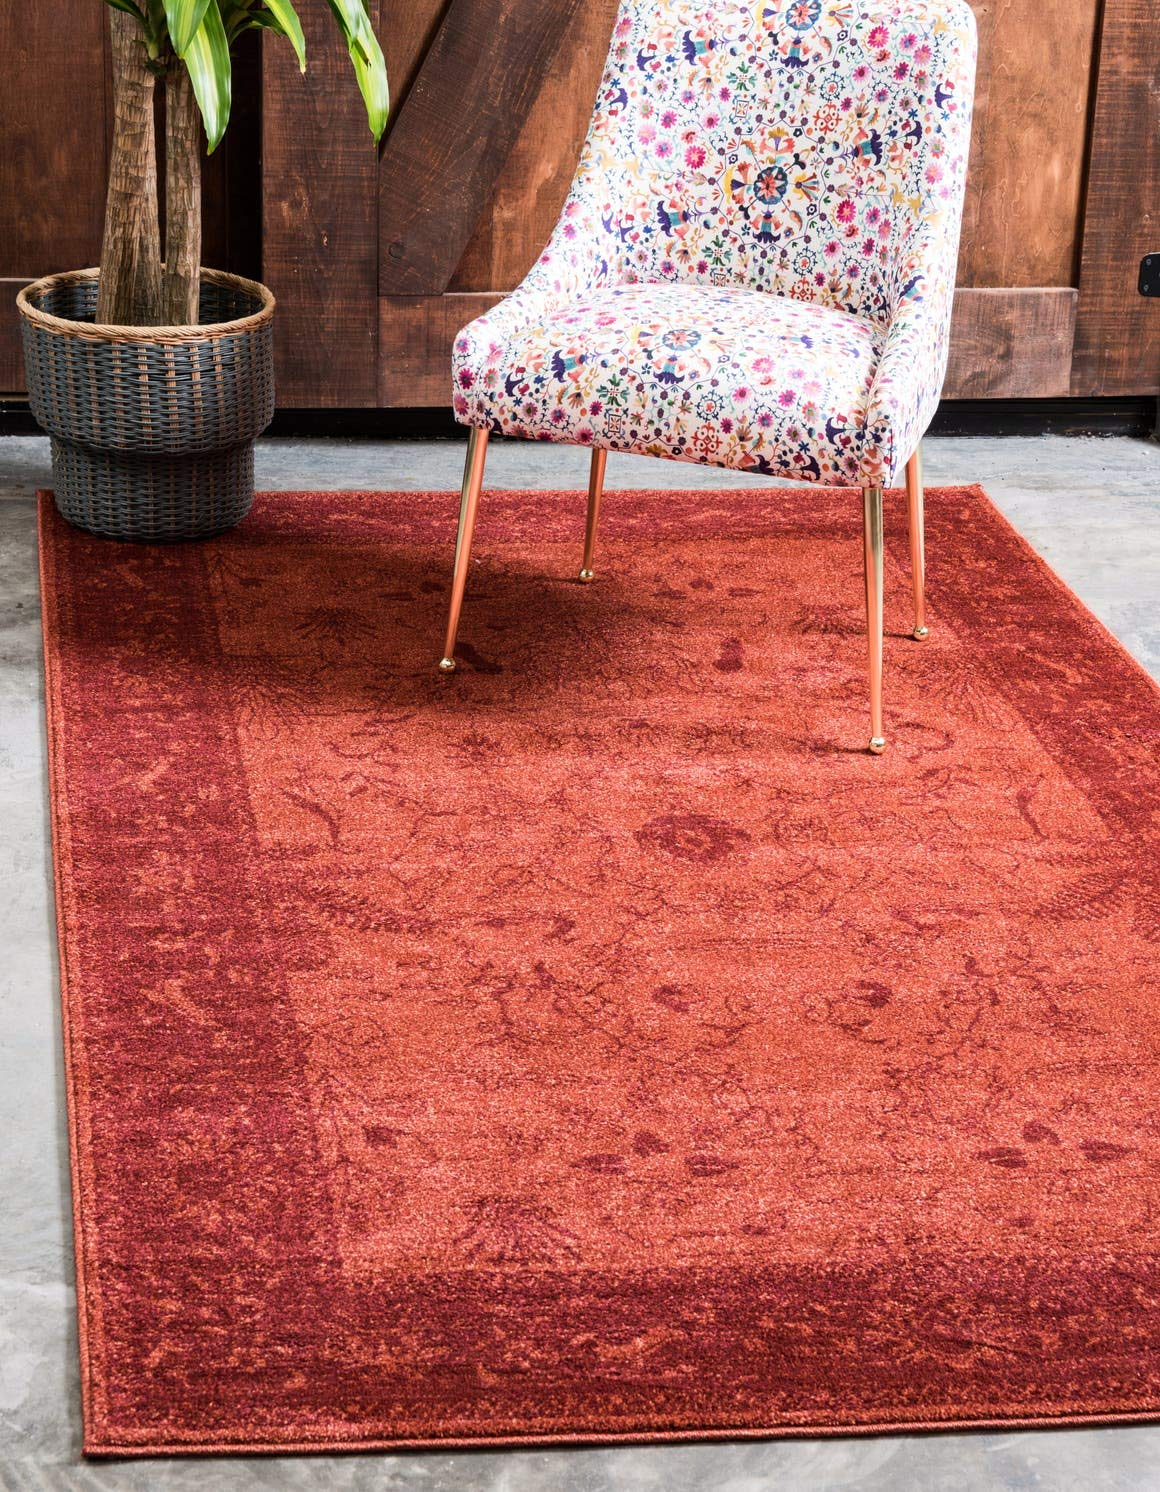 Unique Loom La Jolla Collection Tone-on-Tone Traditional Rust Red Area Rug 6 0 x 9 0